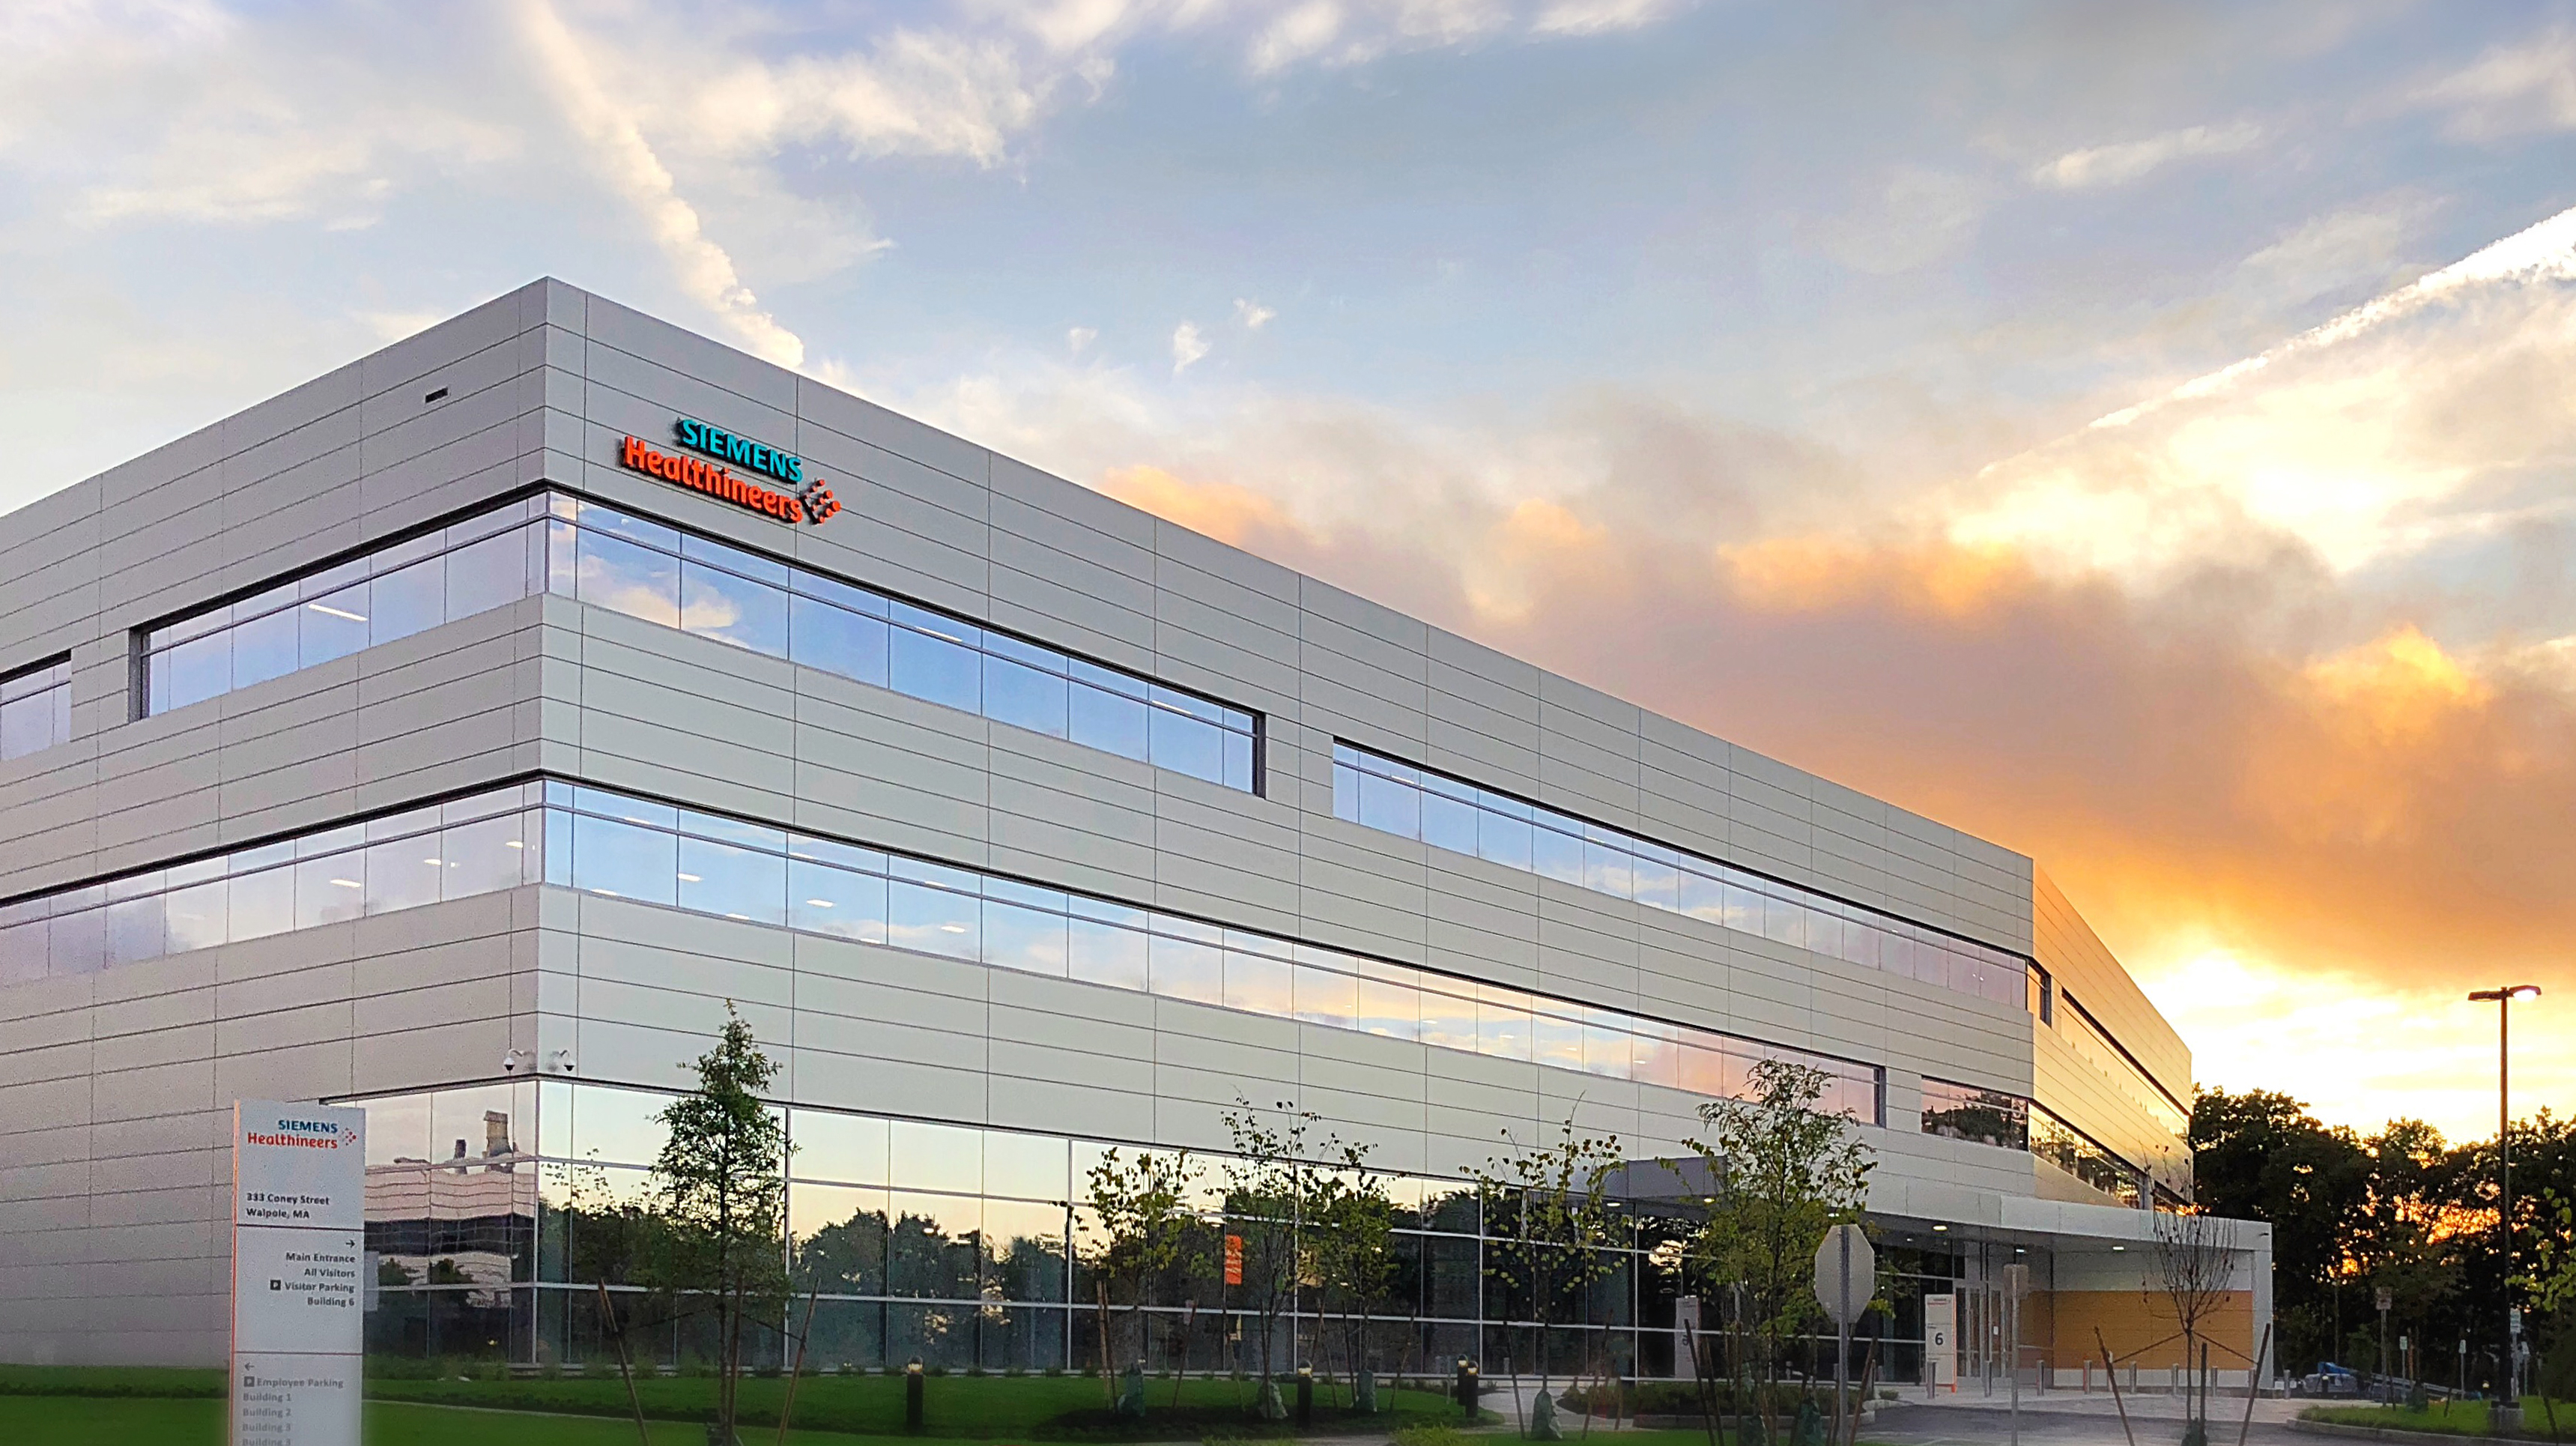 Siemens unveils $300 million facility in Walpole - The